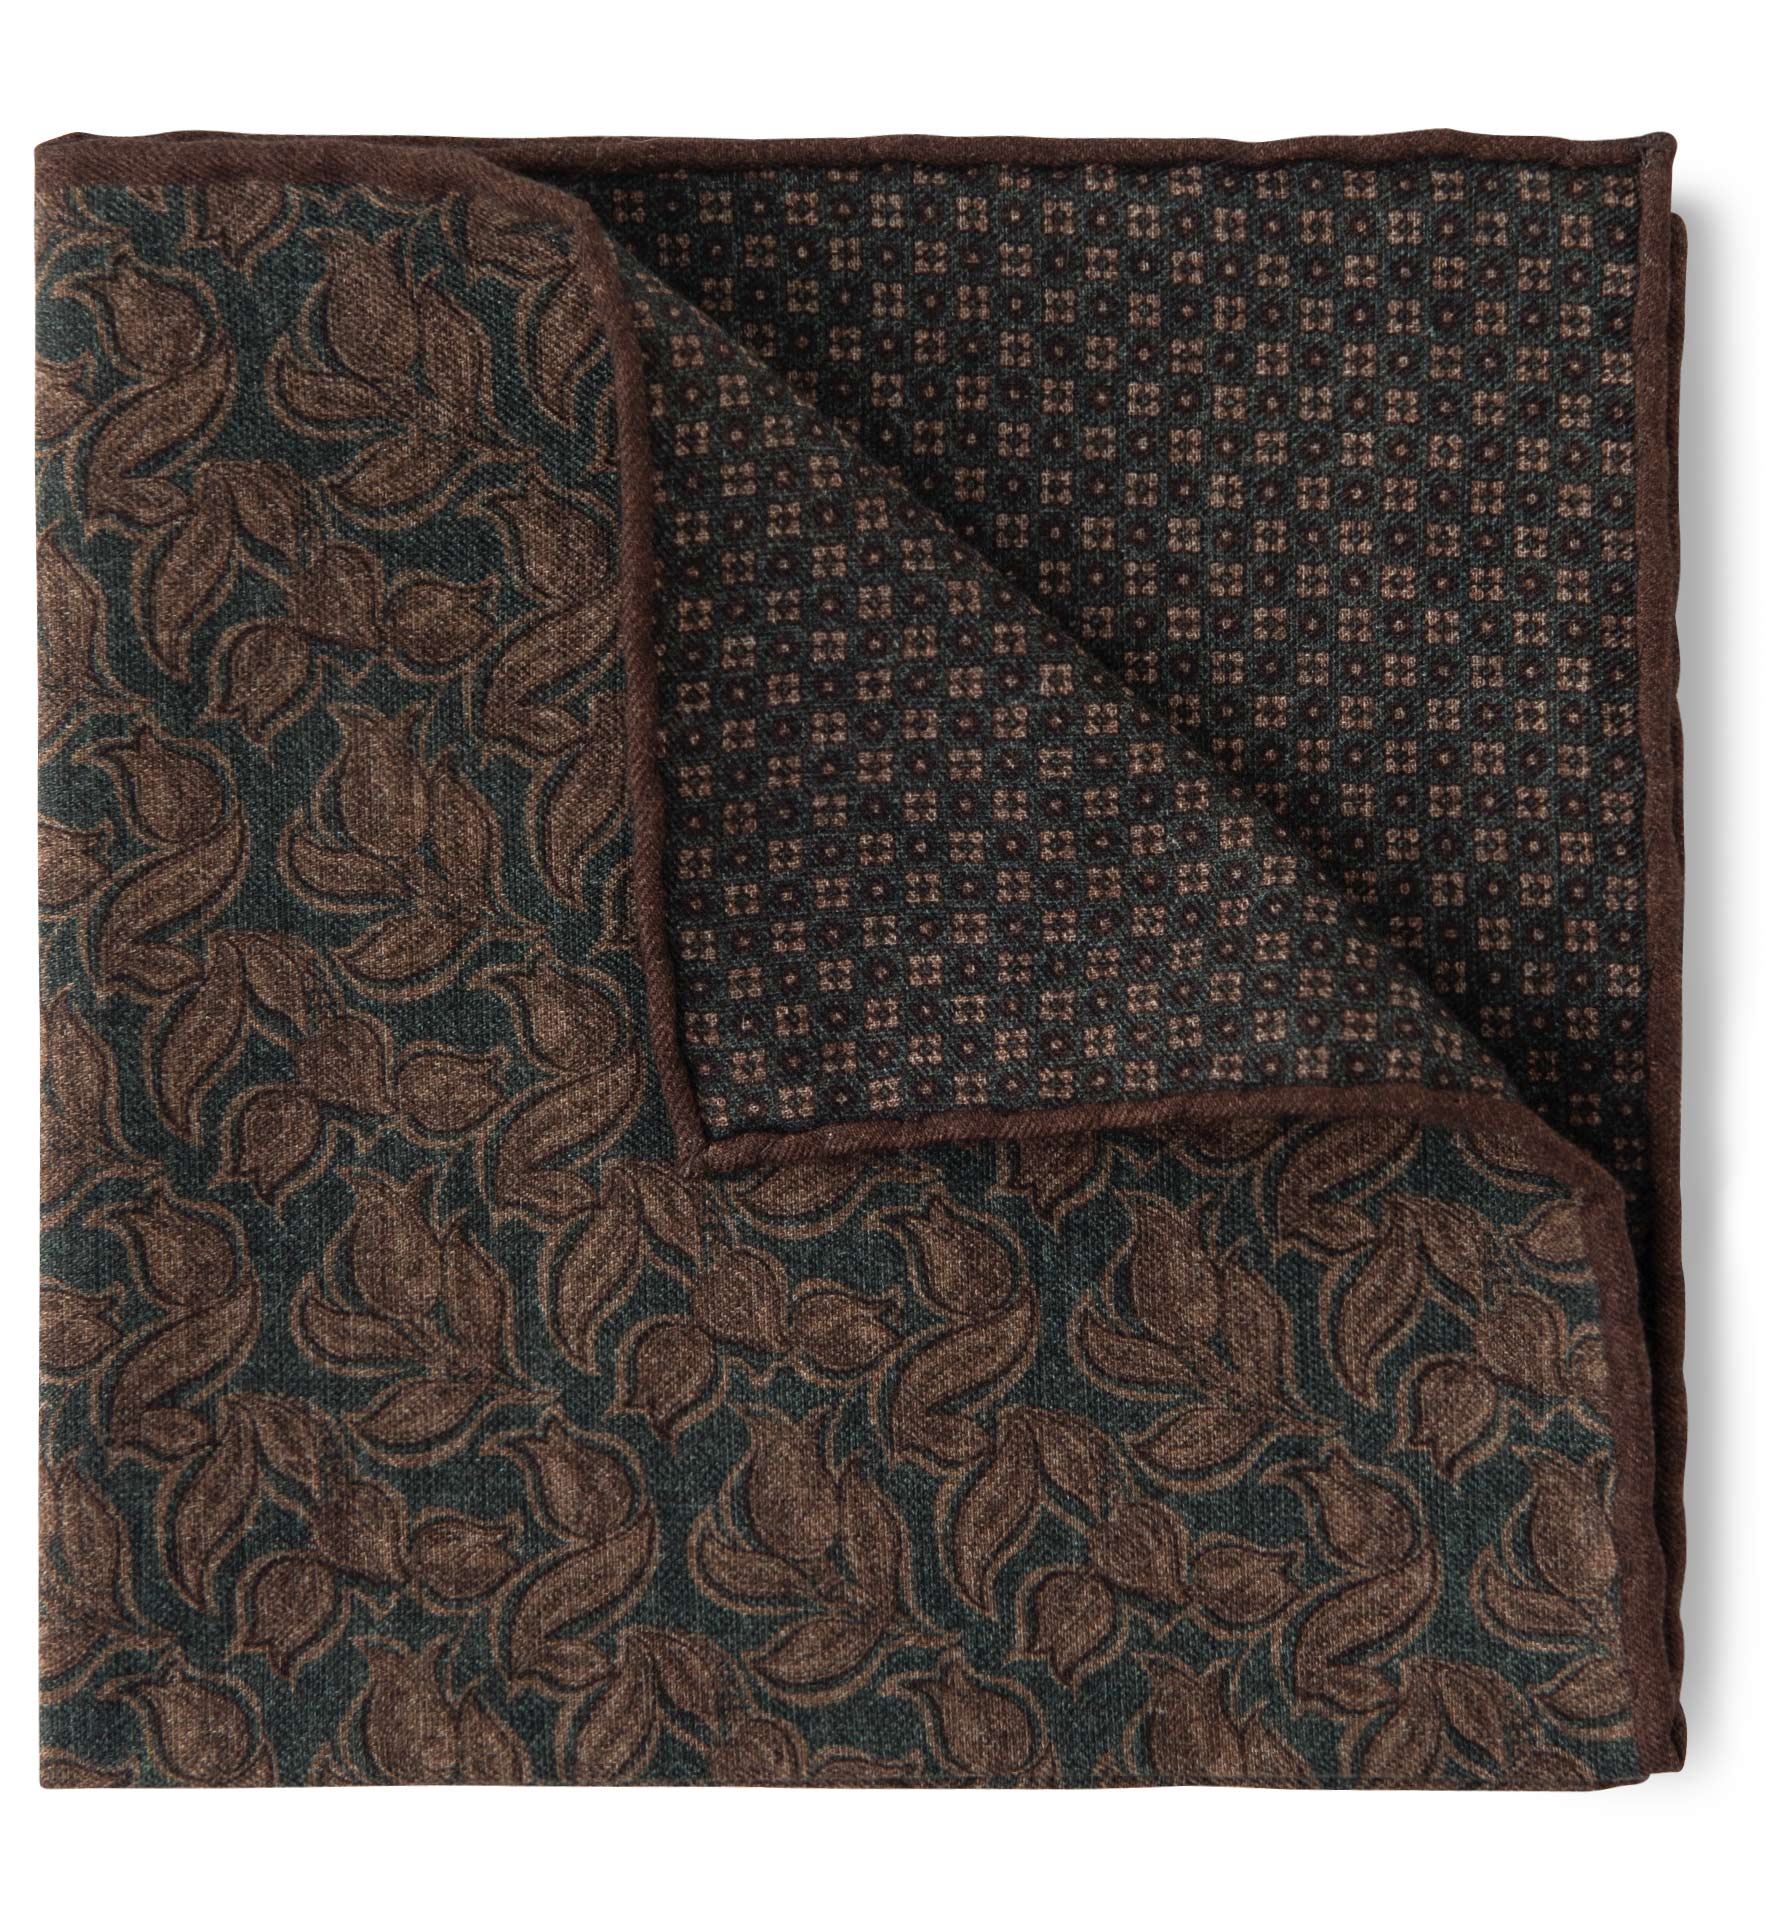 Zoom Image of Green and Brown Floral Print Pocket Square